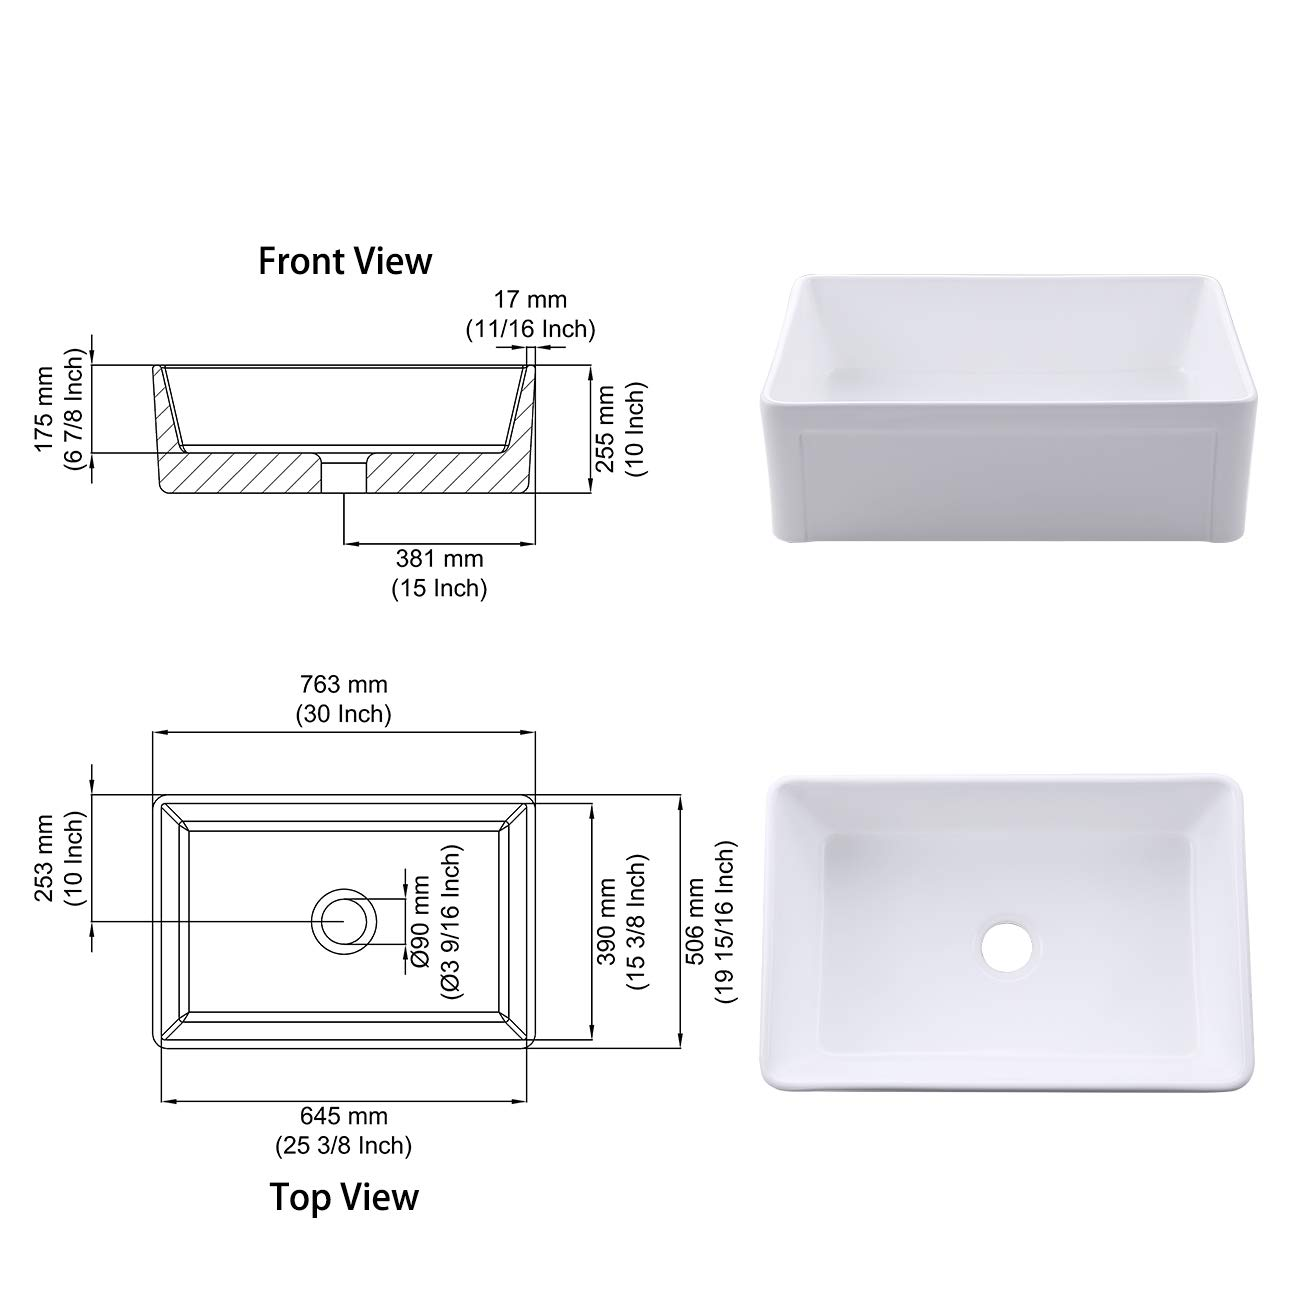 KES cUPC Fireclay Sink Farmhouse Kitchen Sink (30 Inch Porcelain Undermount Rectangular White) BVS117 by Kes (Image #3)